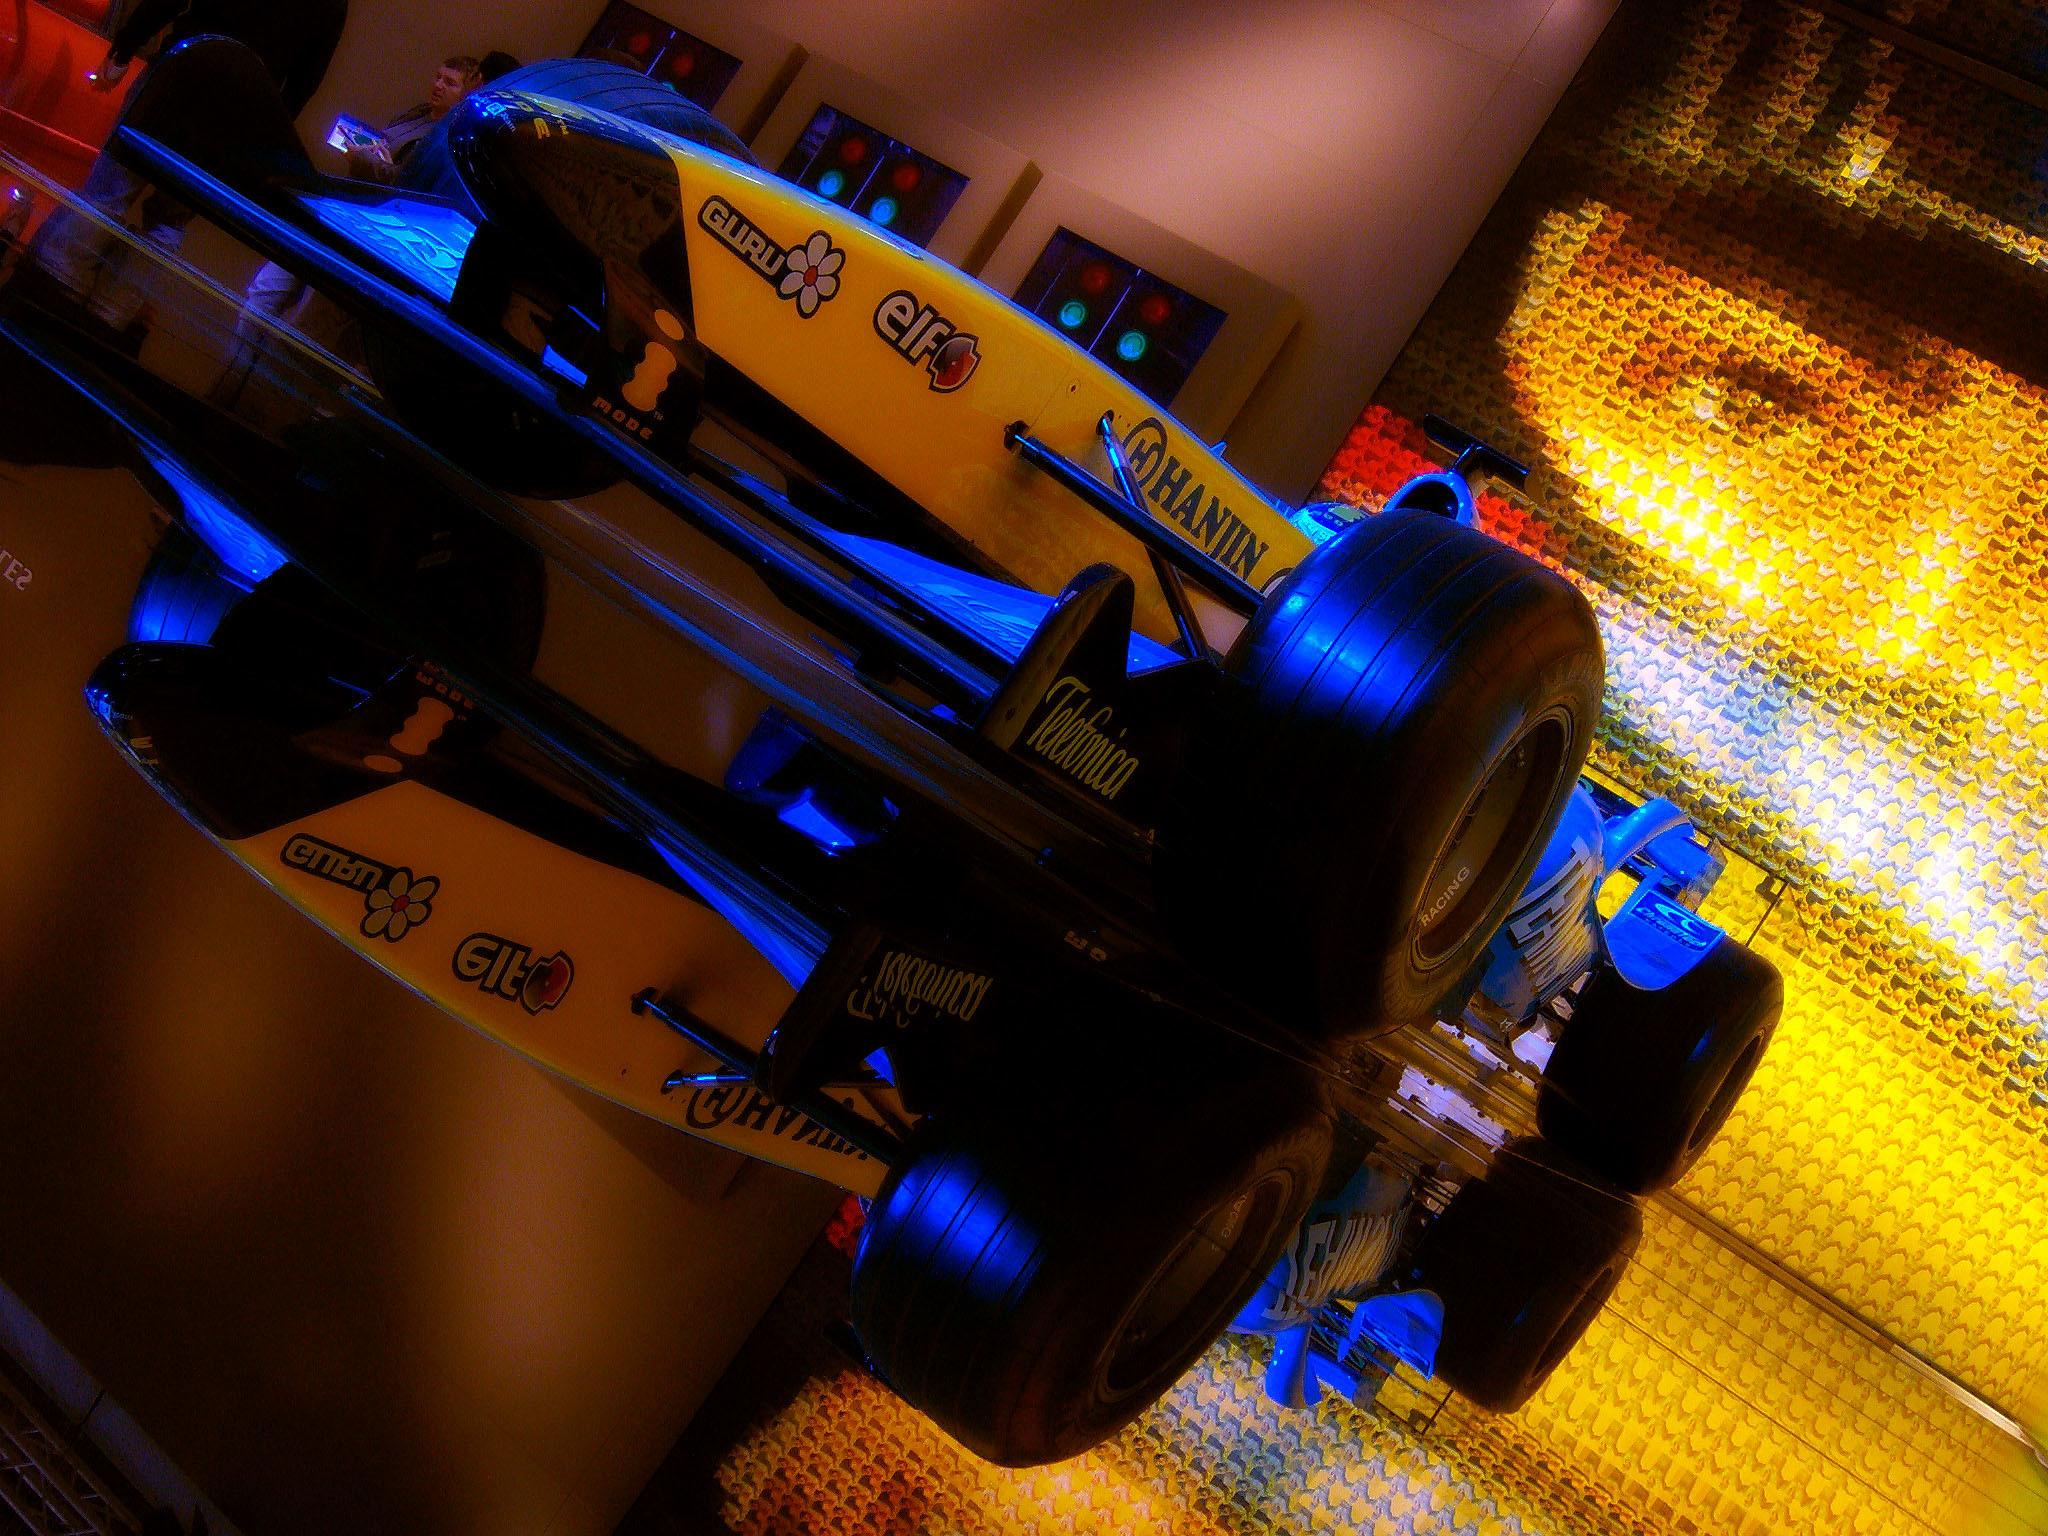 cars formula one vehicles HD Wallpaper